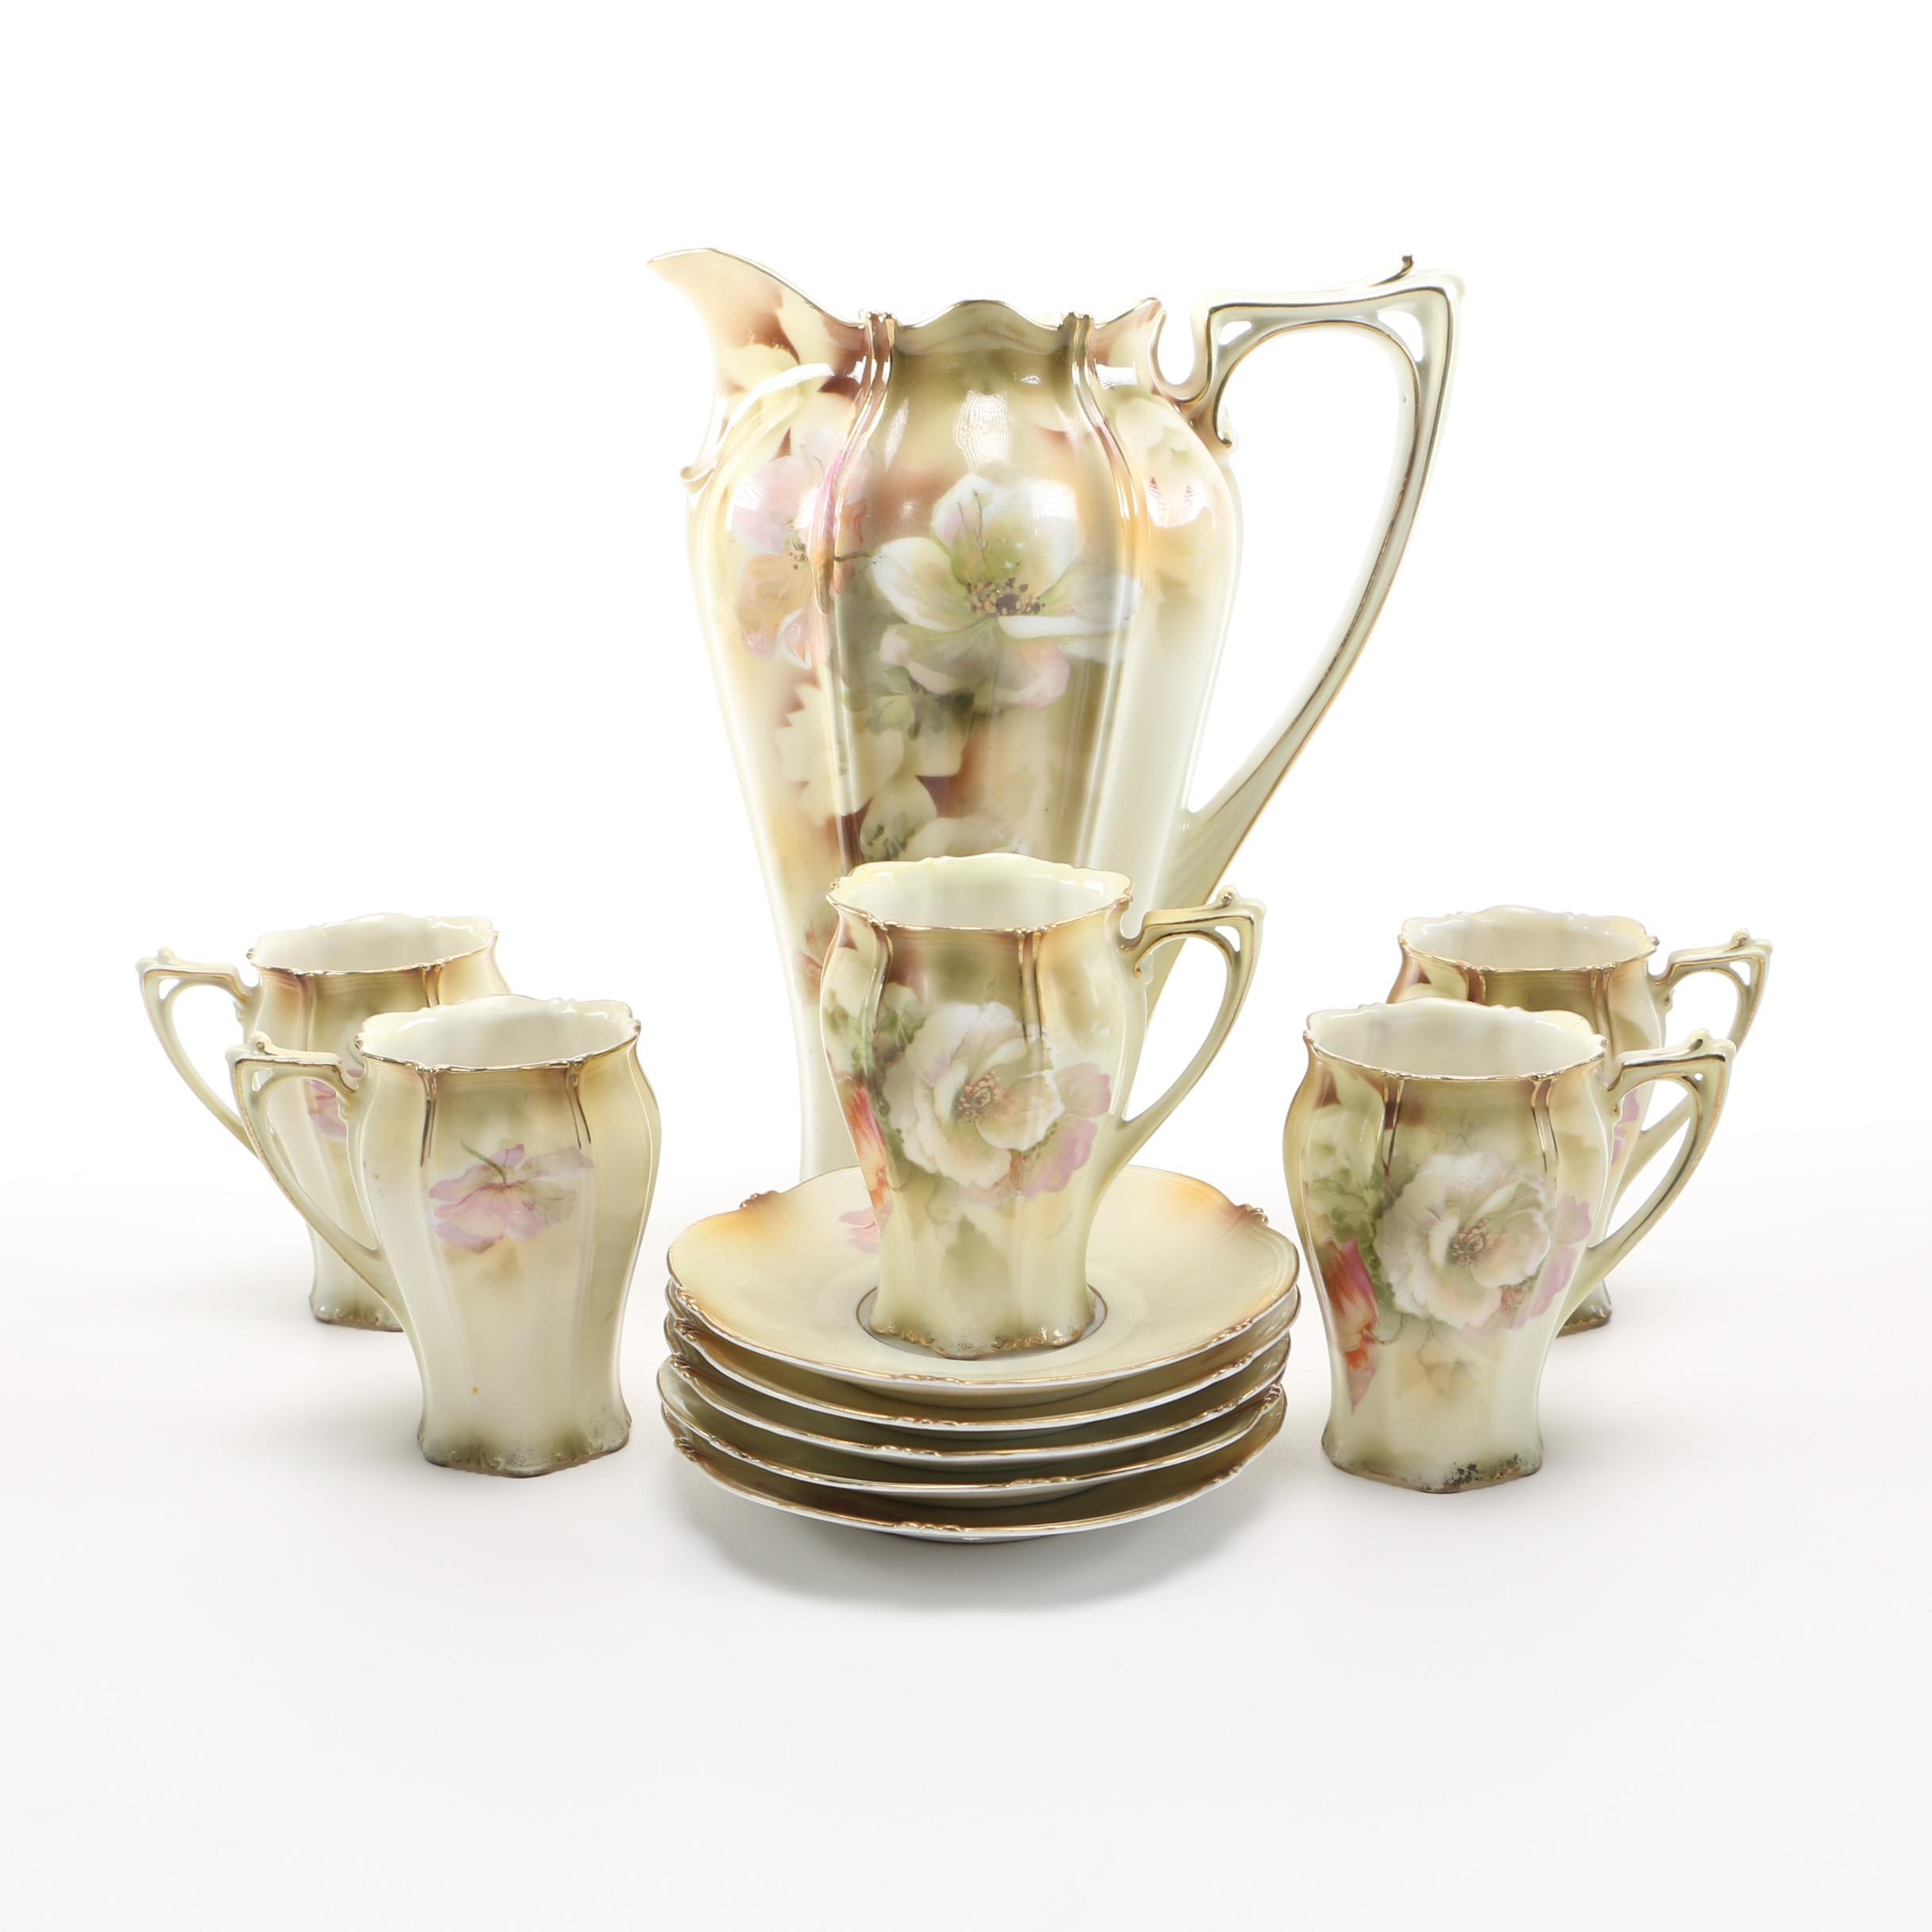 R. S. Prussia Porcelain Hot Chocolate Set